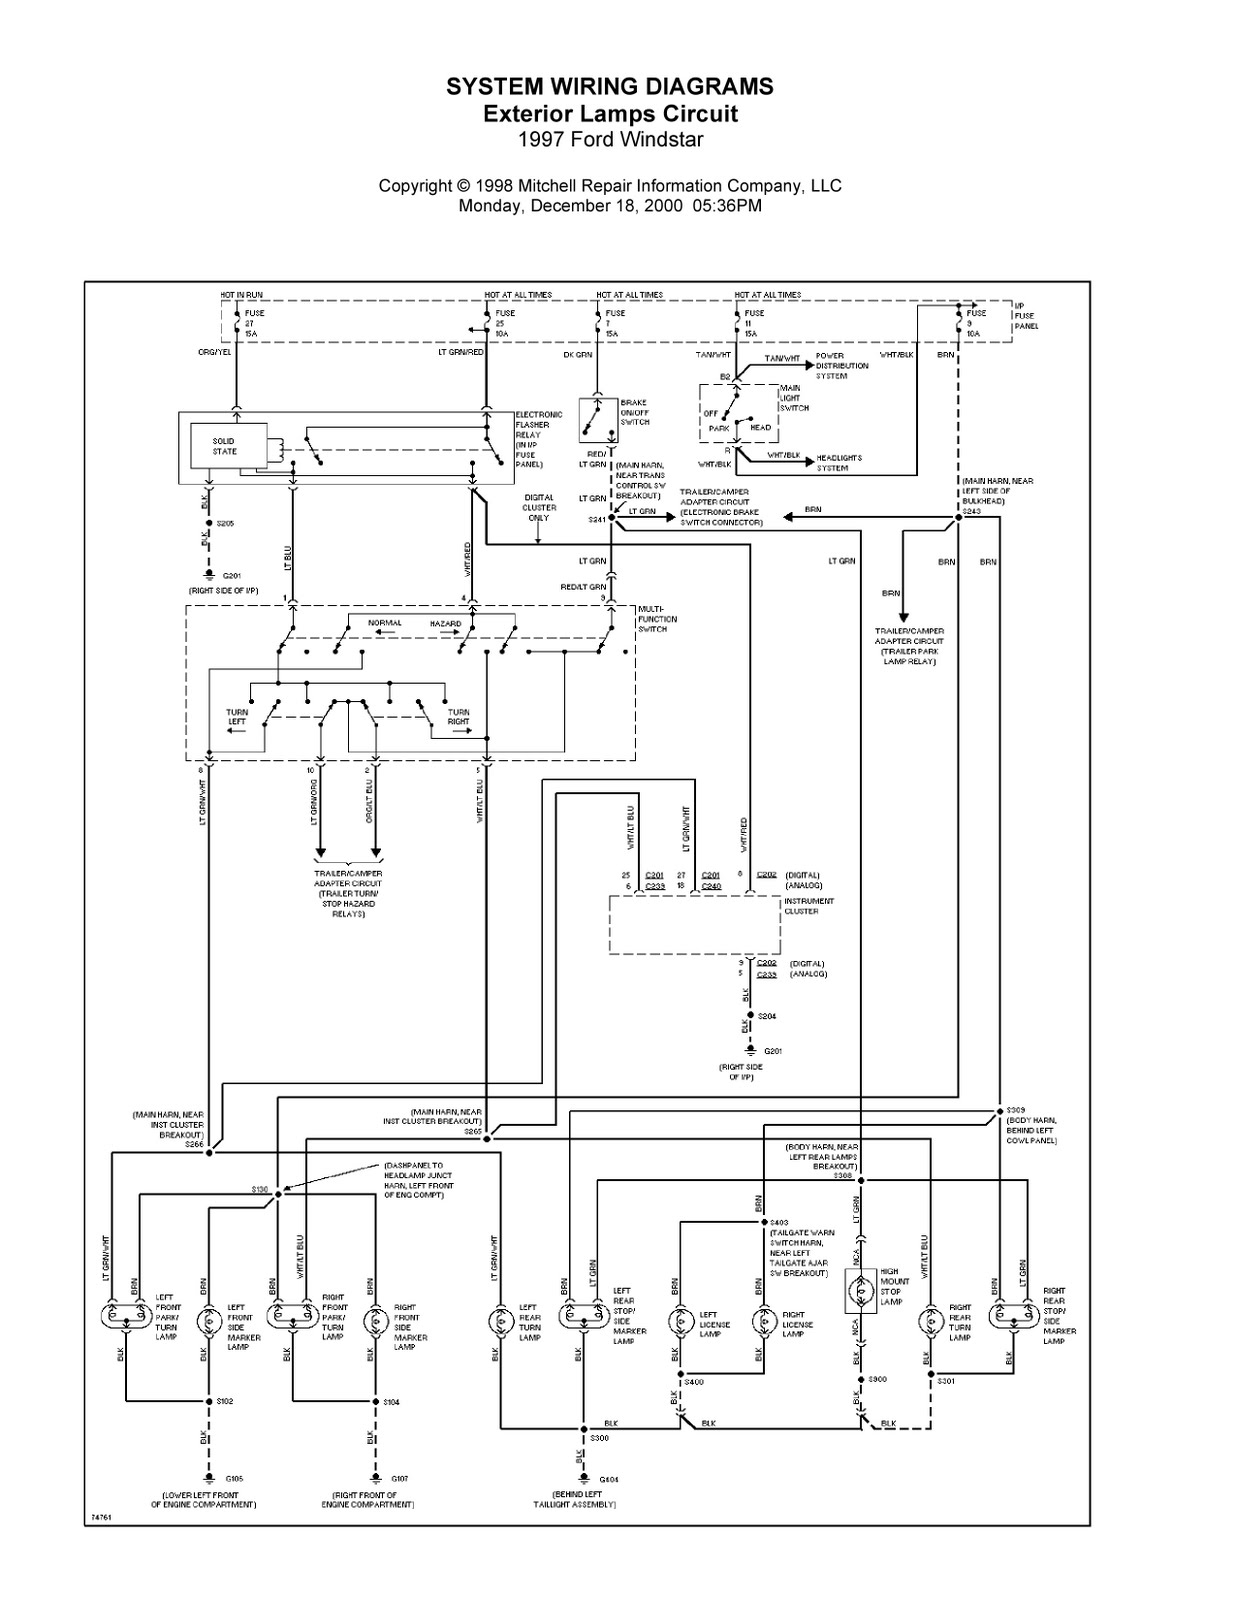 1997 Ford Windstar Complete System Wiring Diagrams | Wiring Diagrams Center